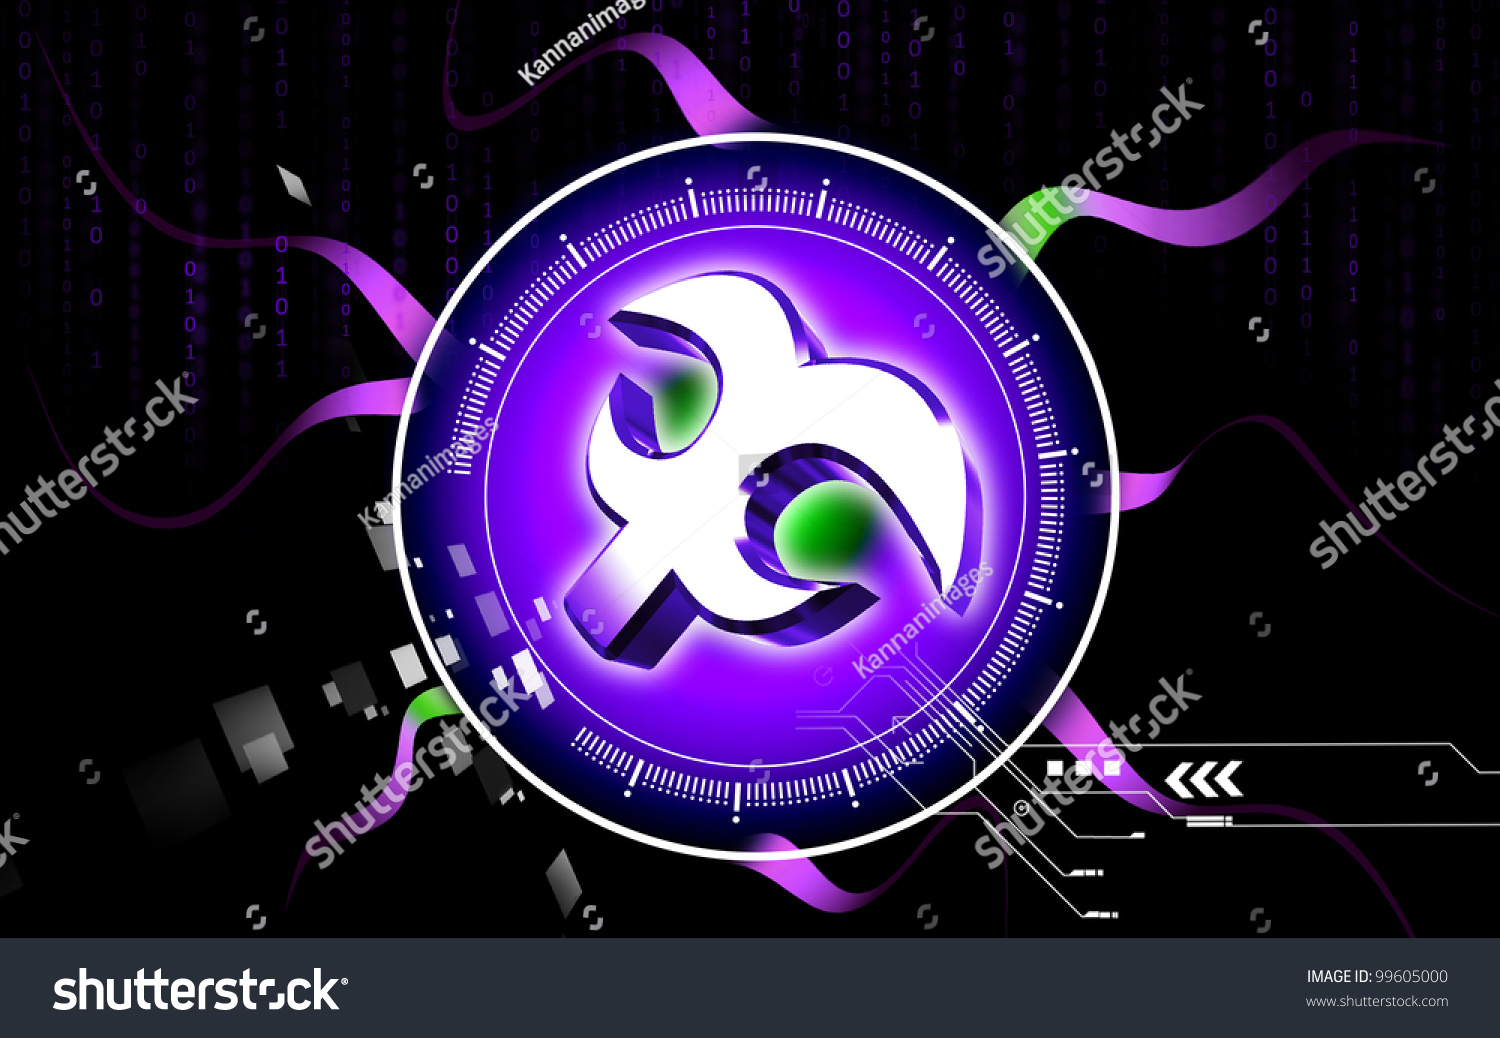 Atheist symbol ring choice image symbol and sign ideas digital illustration atheist symbol isolated background stock digital illustration of atheist symbol in isolated background buycottarizona biocorpaavc